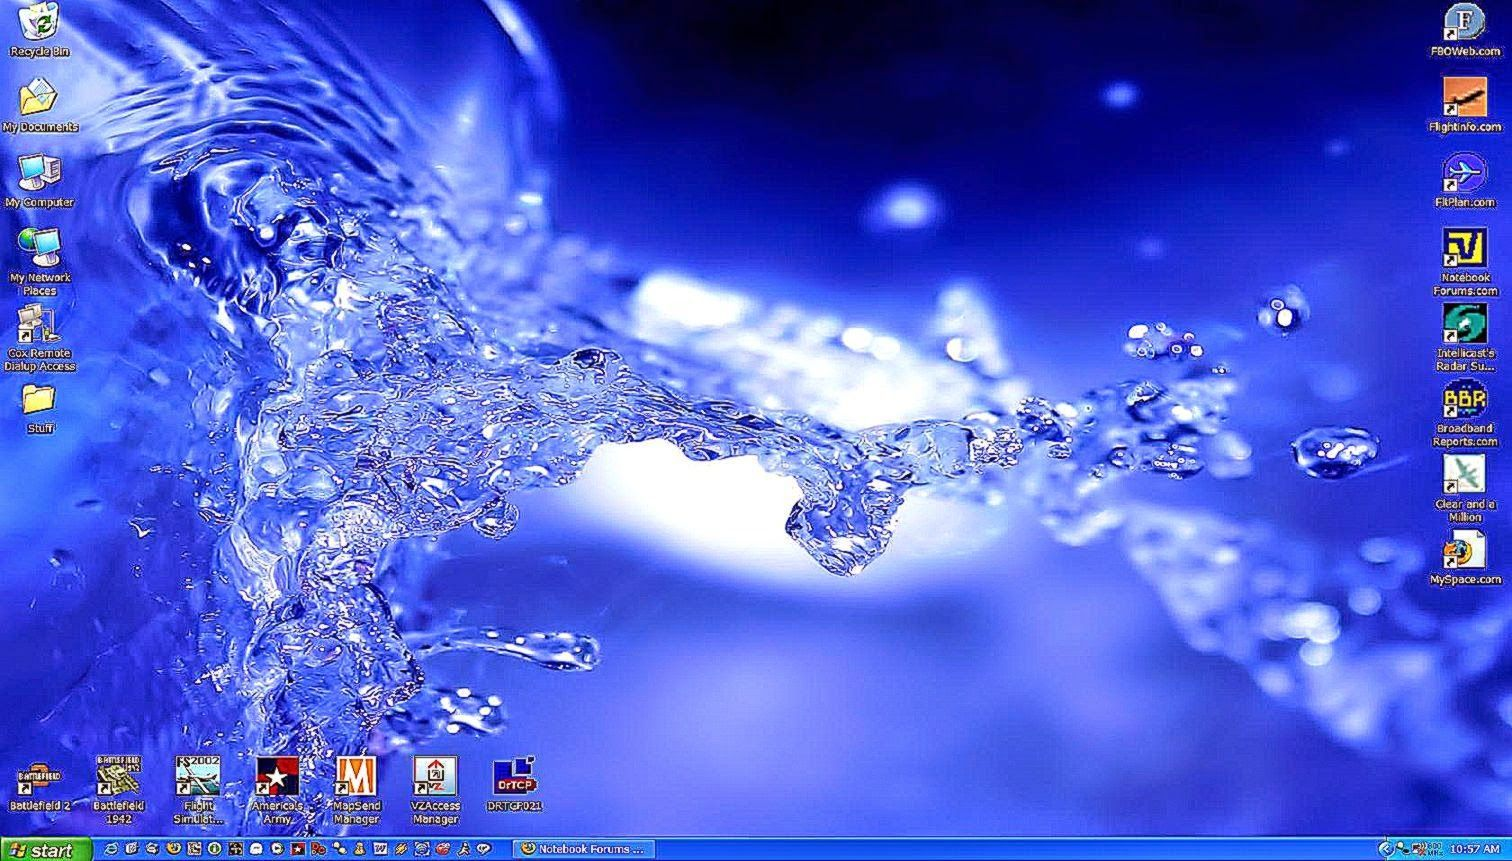 Dell Desktop Backgrounds 106 images in Collection Page 1 1512x861